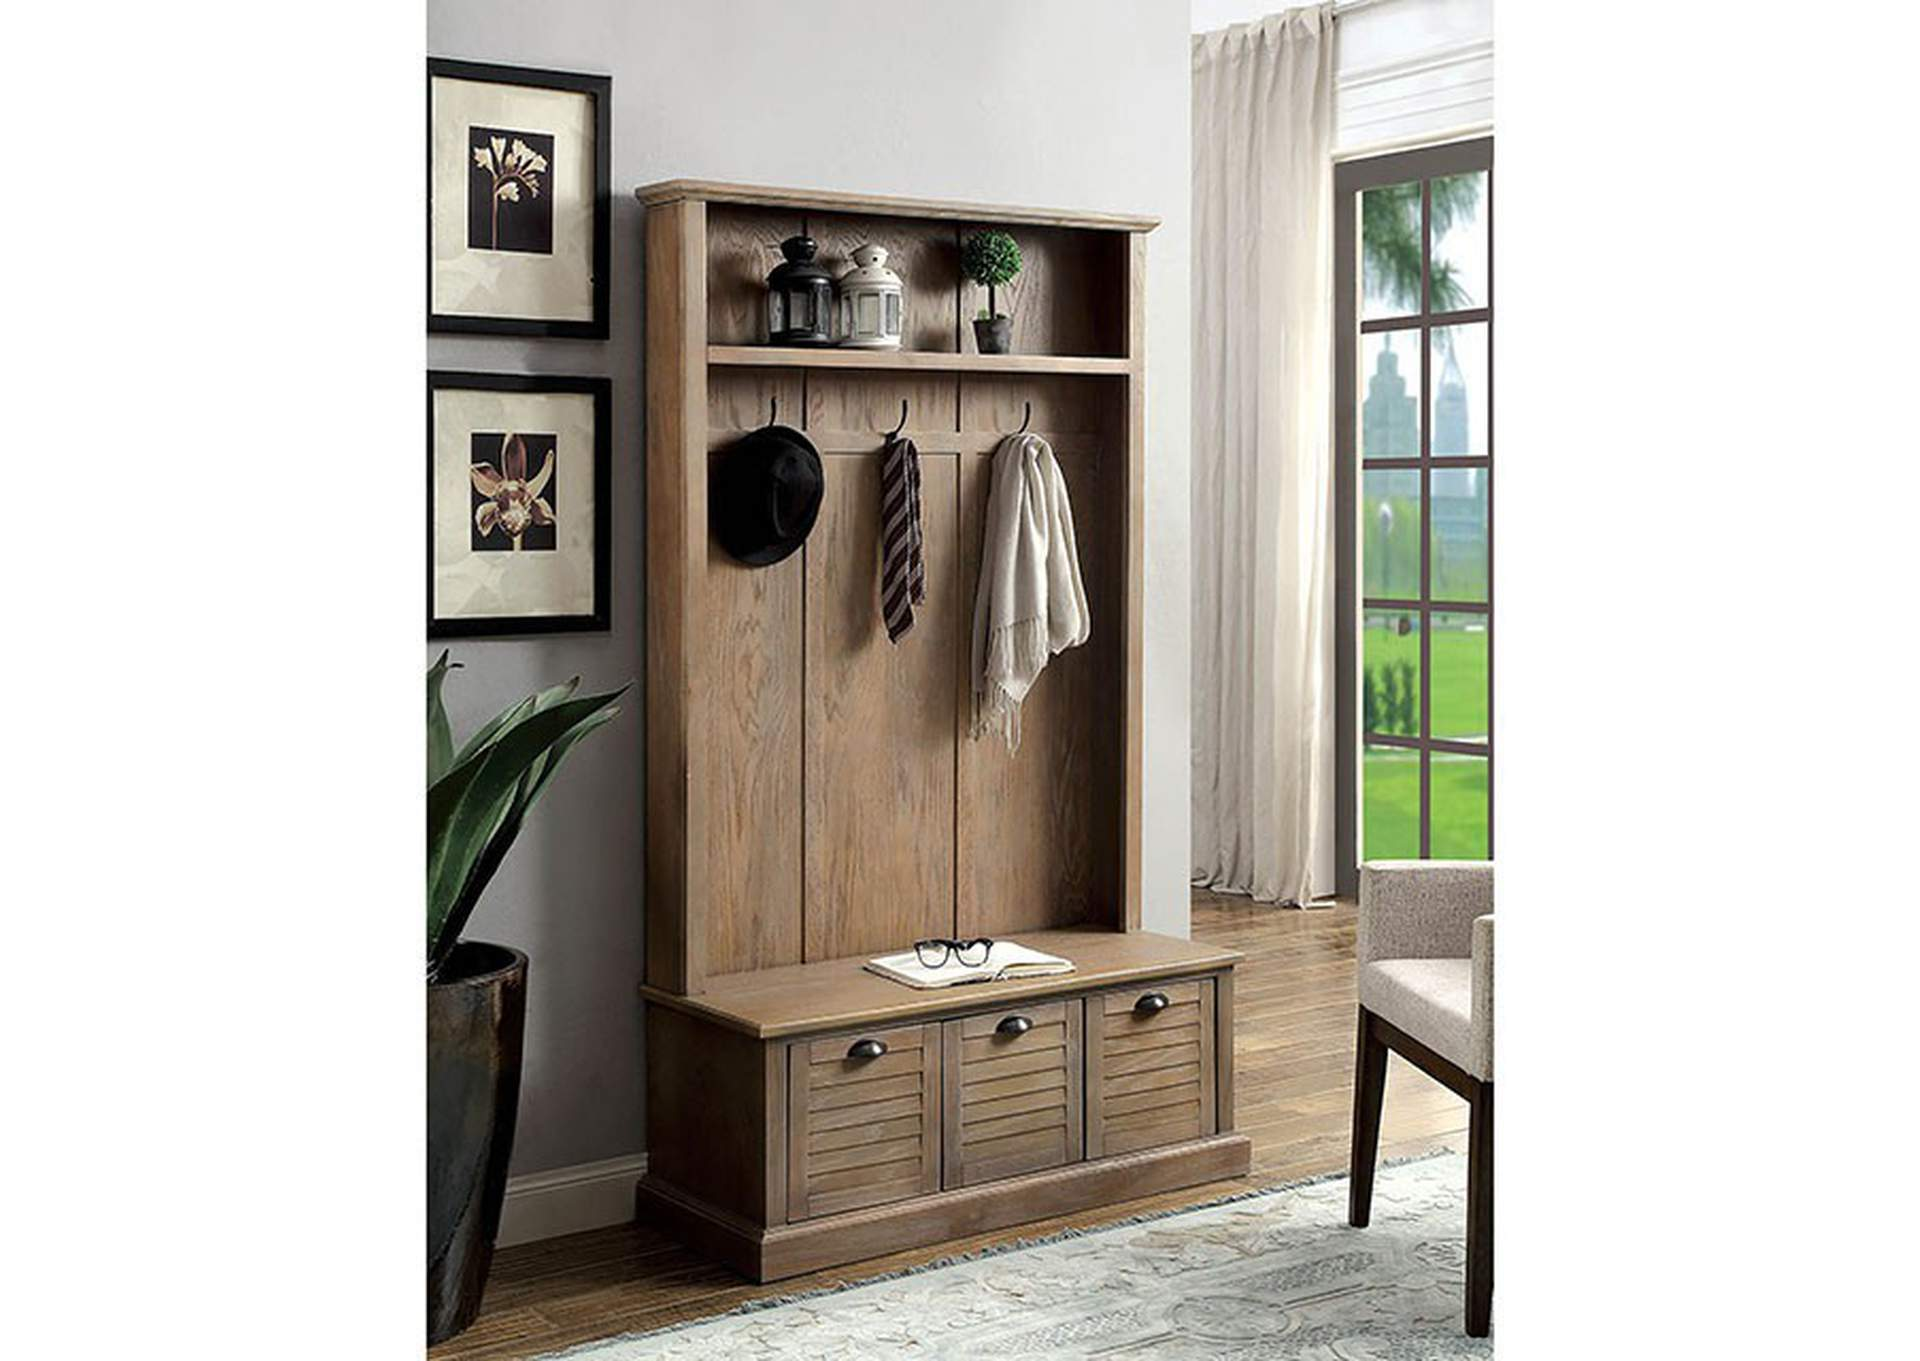 Wineglow Weathered Gray Hallway Cabinet,Furniture of America